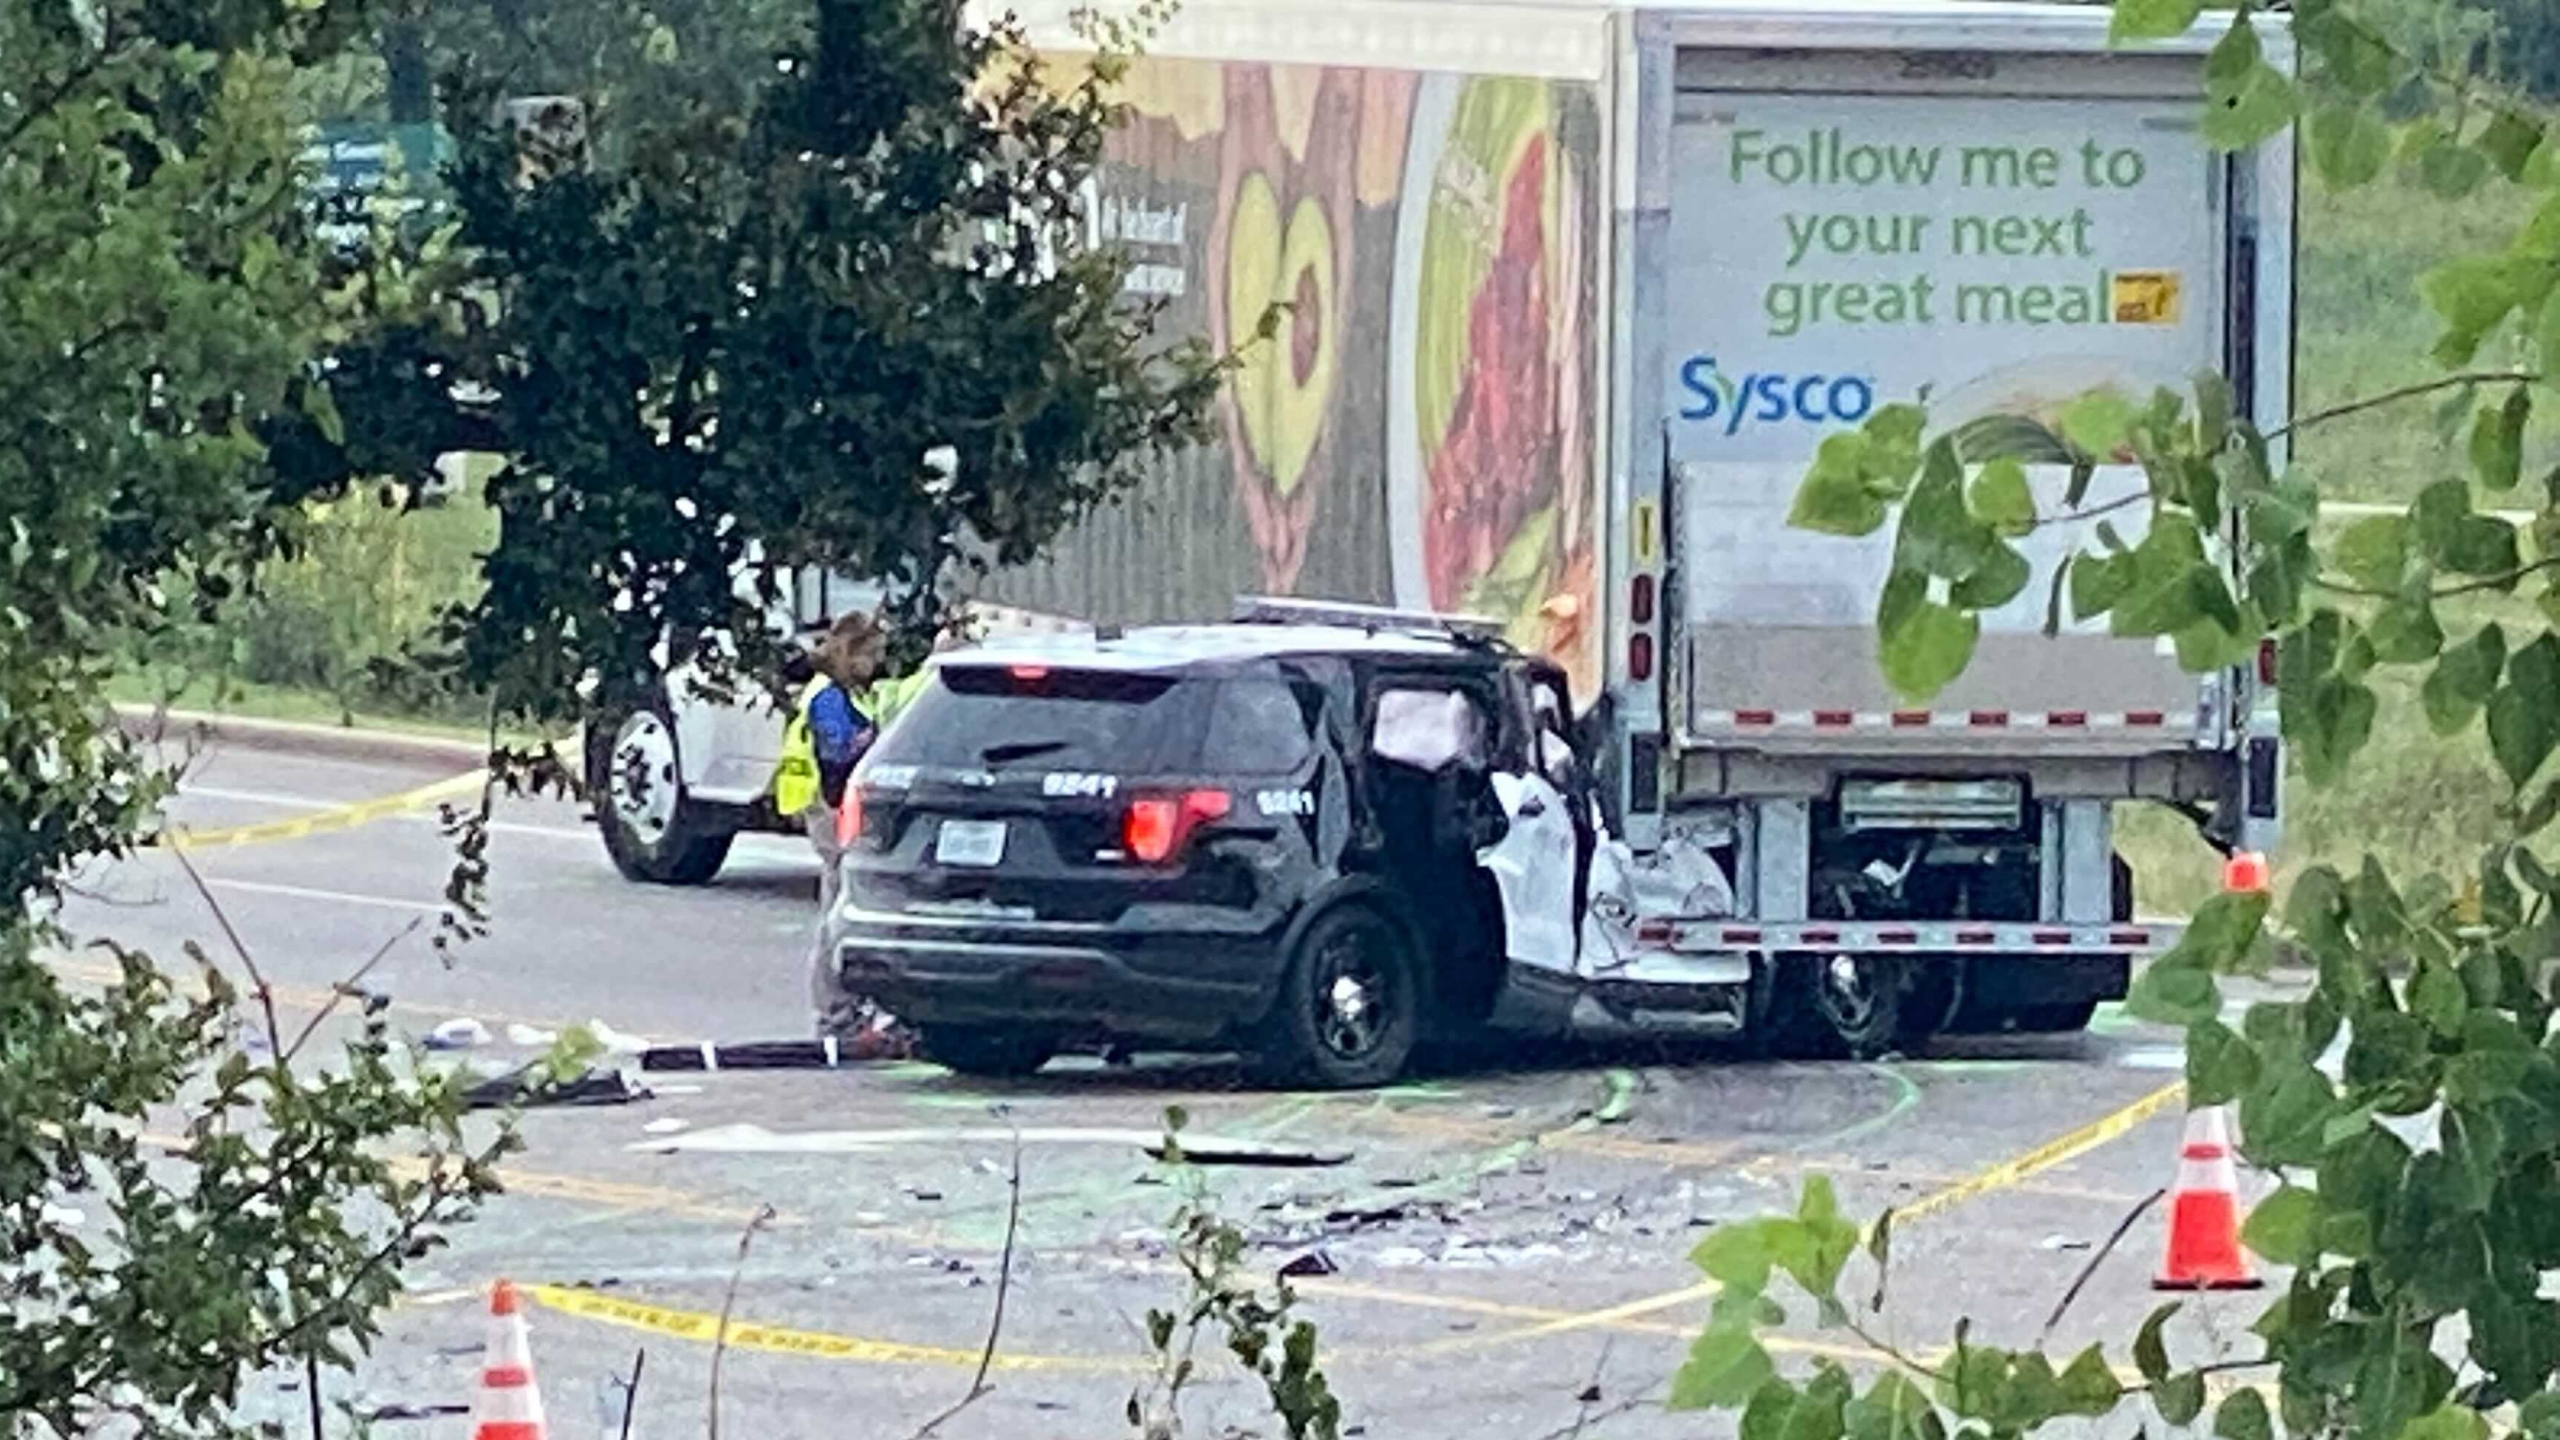 An APD officer is in the hospital after a crash on FM 969 near Decker Lane on Wednesday morning. (KXAN photo/Nabil Remadna)